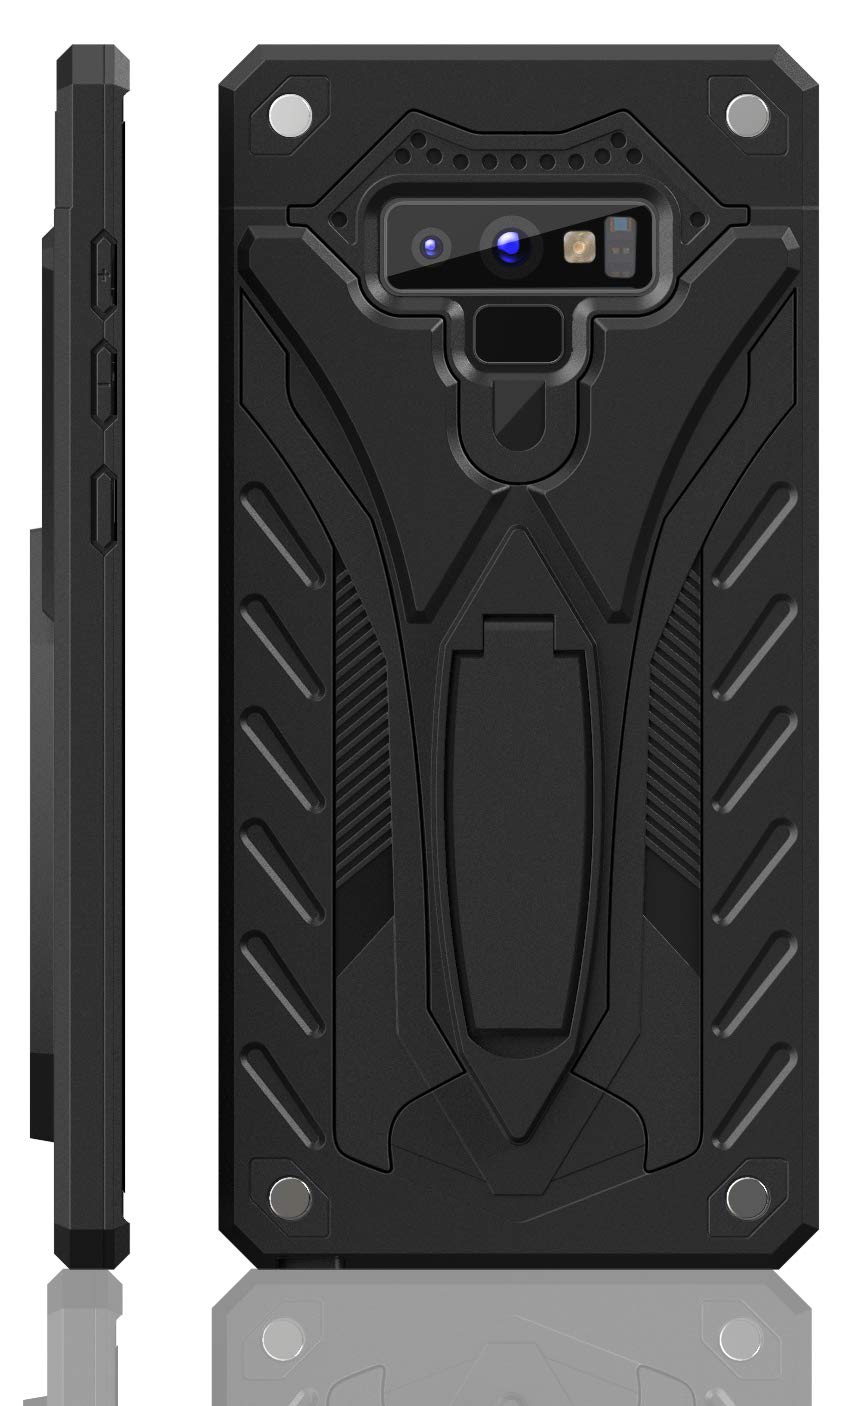 Samsung Galaxy Note 9 Case   Military Grade   12ft. Drop Tested Protective Case   Kickstand   Wireless Charging   Compatible with Galaxy Note 9 - Black